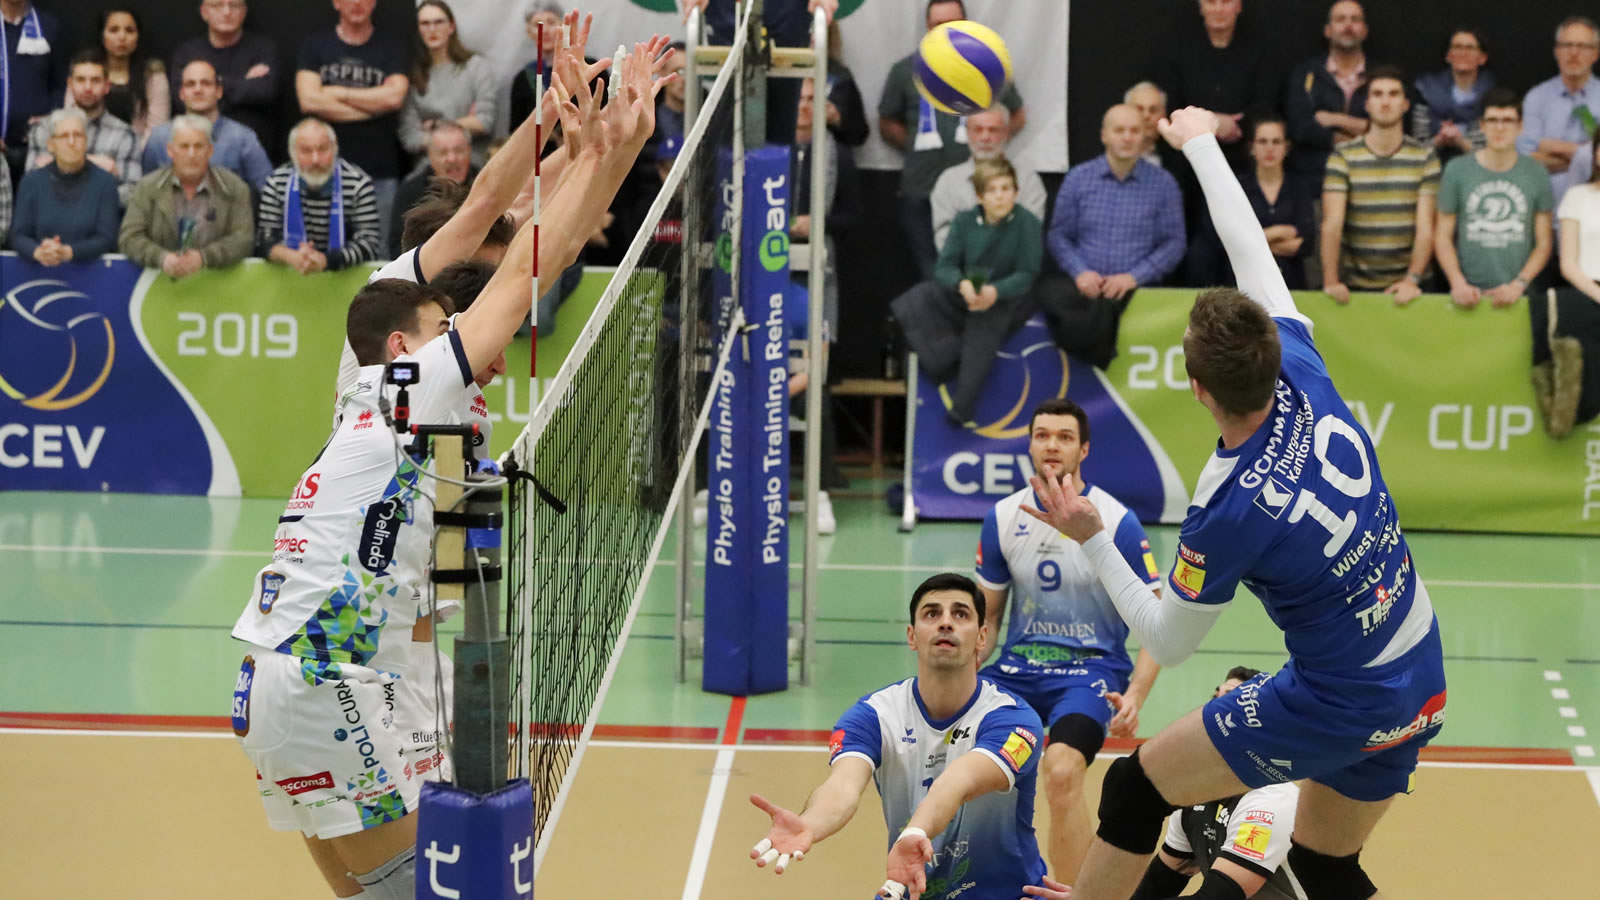 Playoff 1/4-Final, Spiel 1: LINDAREN Volley Amriswil – TSV Volley Jona